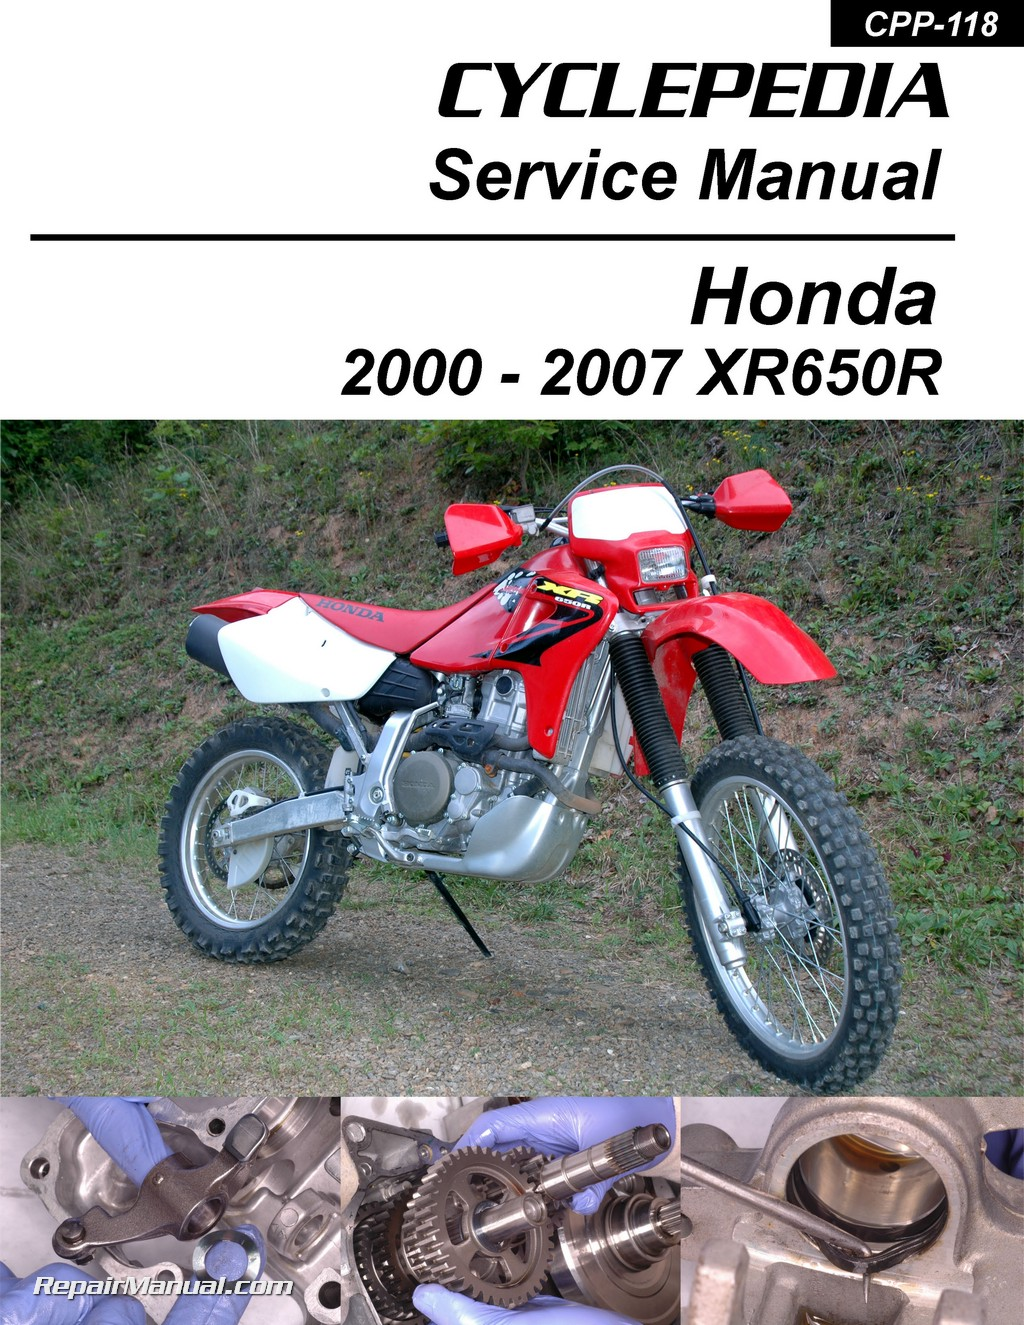 Honda Motorcycle Dealer Parts Online